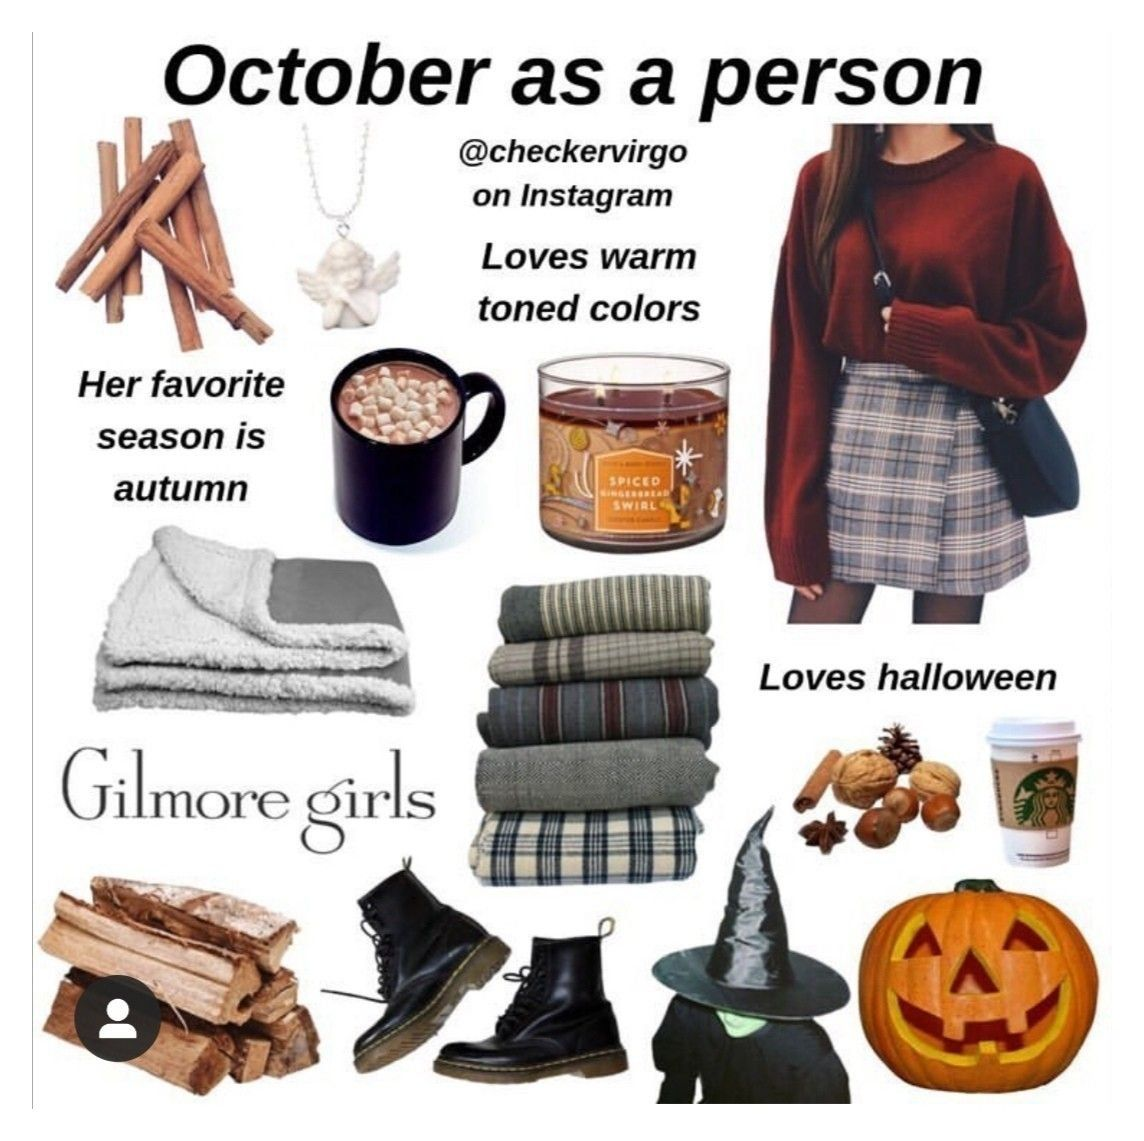 gilmore girls aesthetic clothes